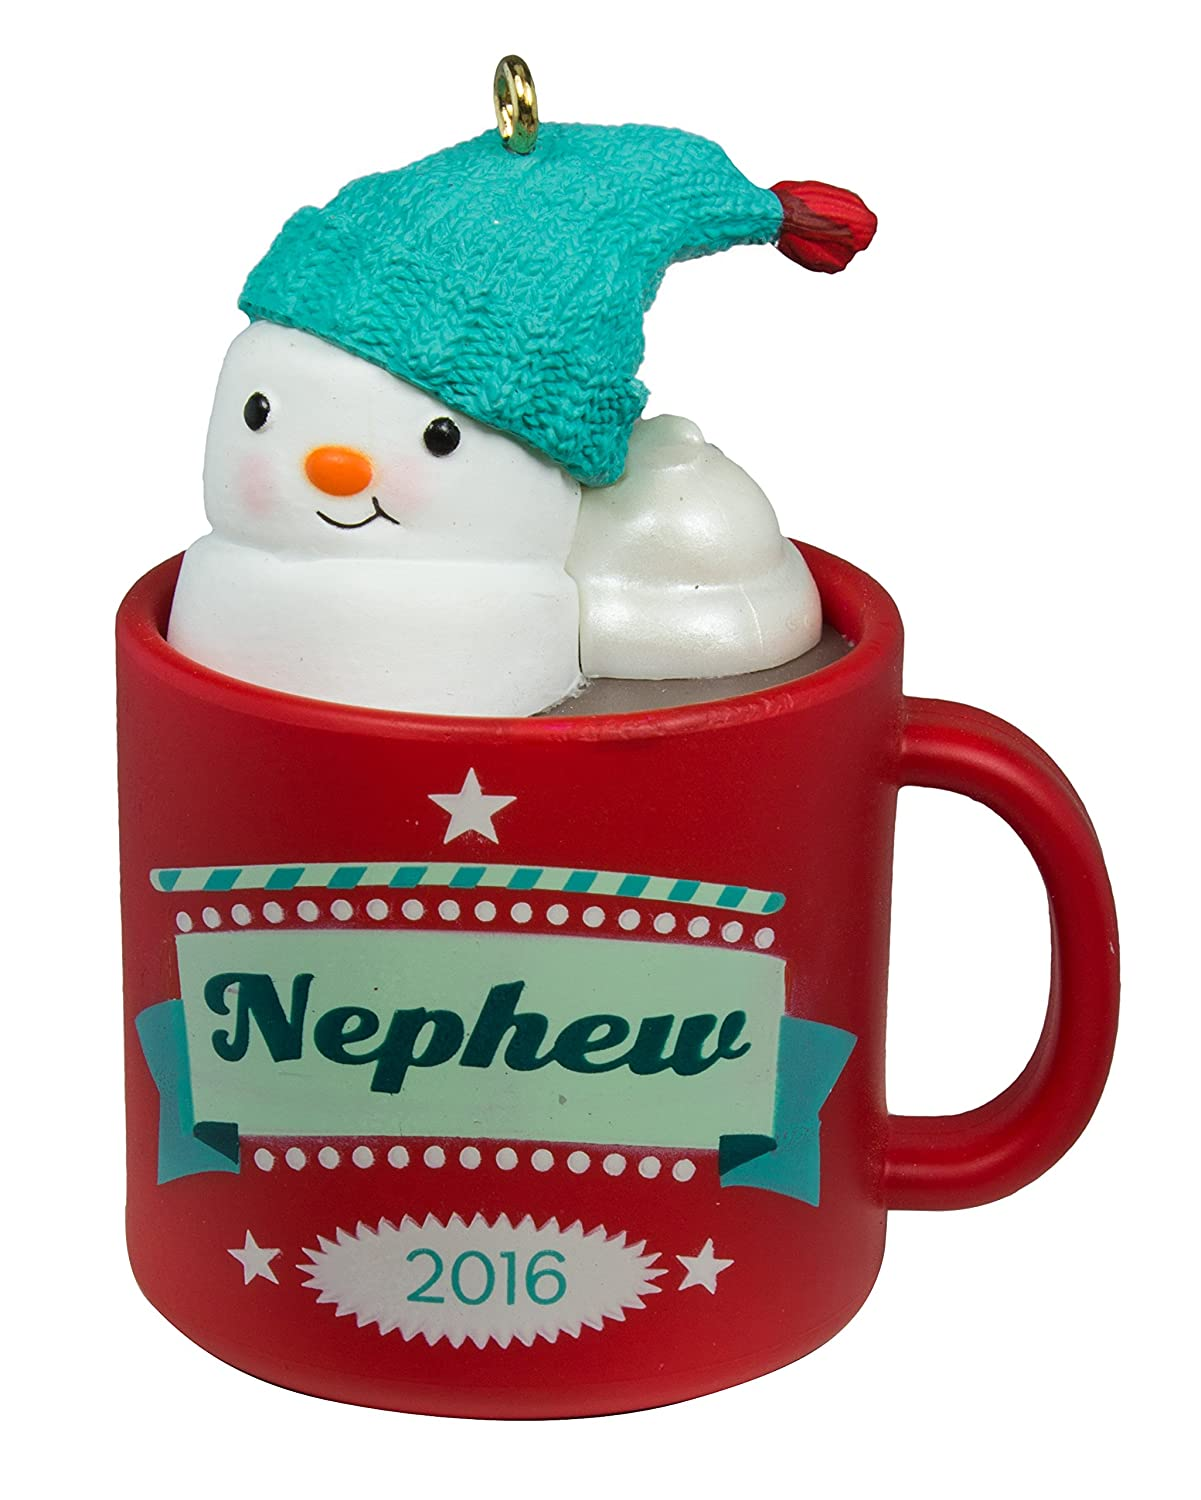 Hallmark Keepsake 2016 Nephew Hot Cocoa Mug and Marshmallow Snowman Ornament